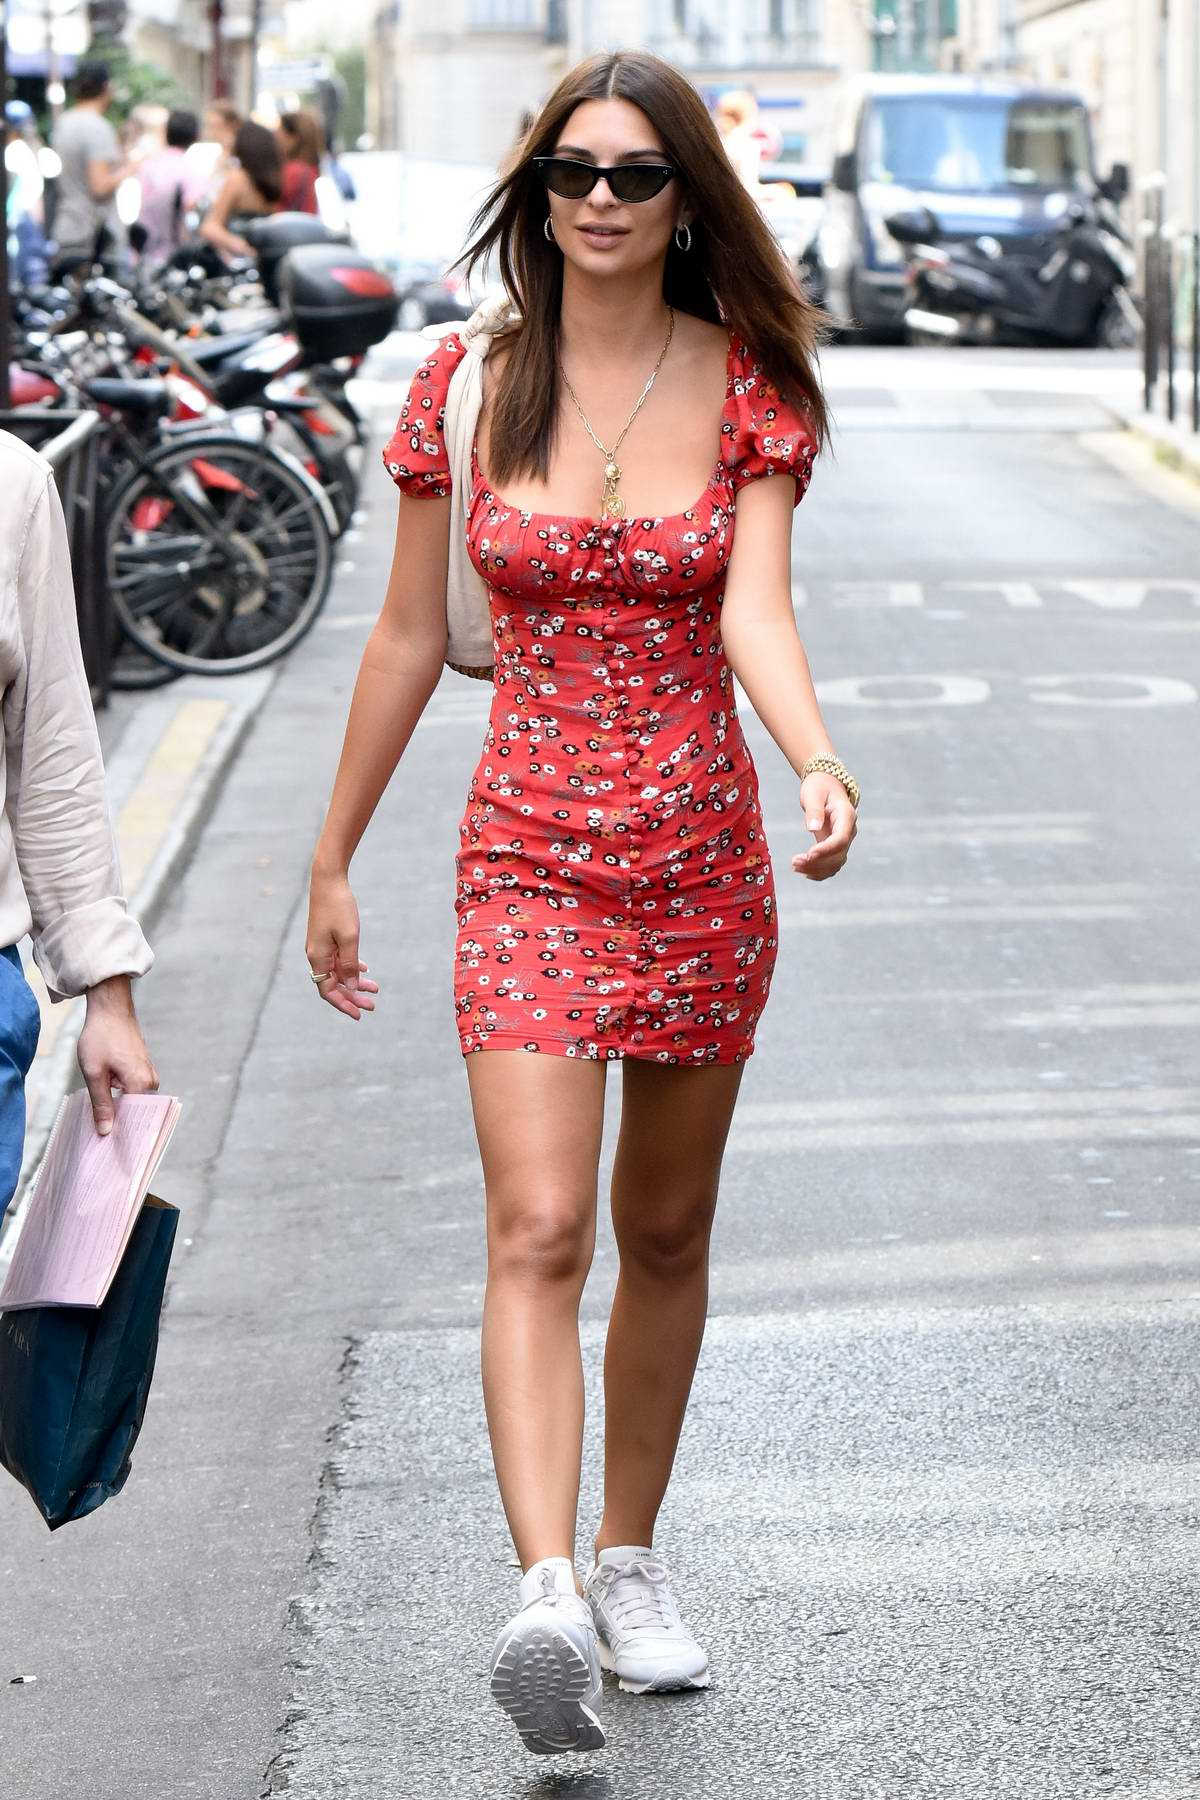 Emily Ratajkowski seen in a short red dress while out sightseeing in Paris, France